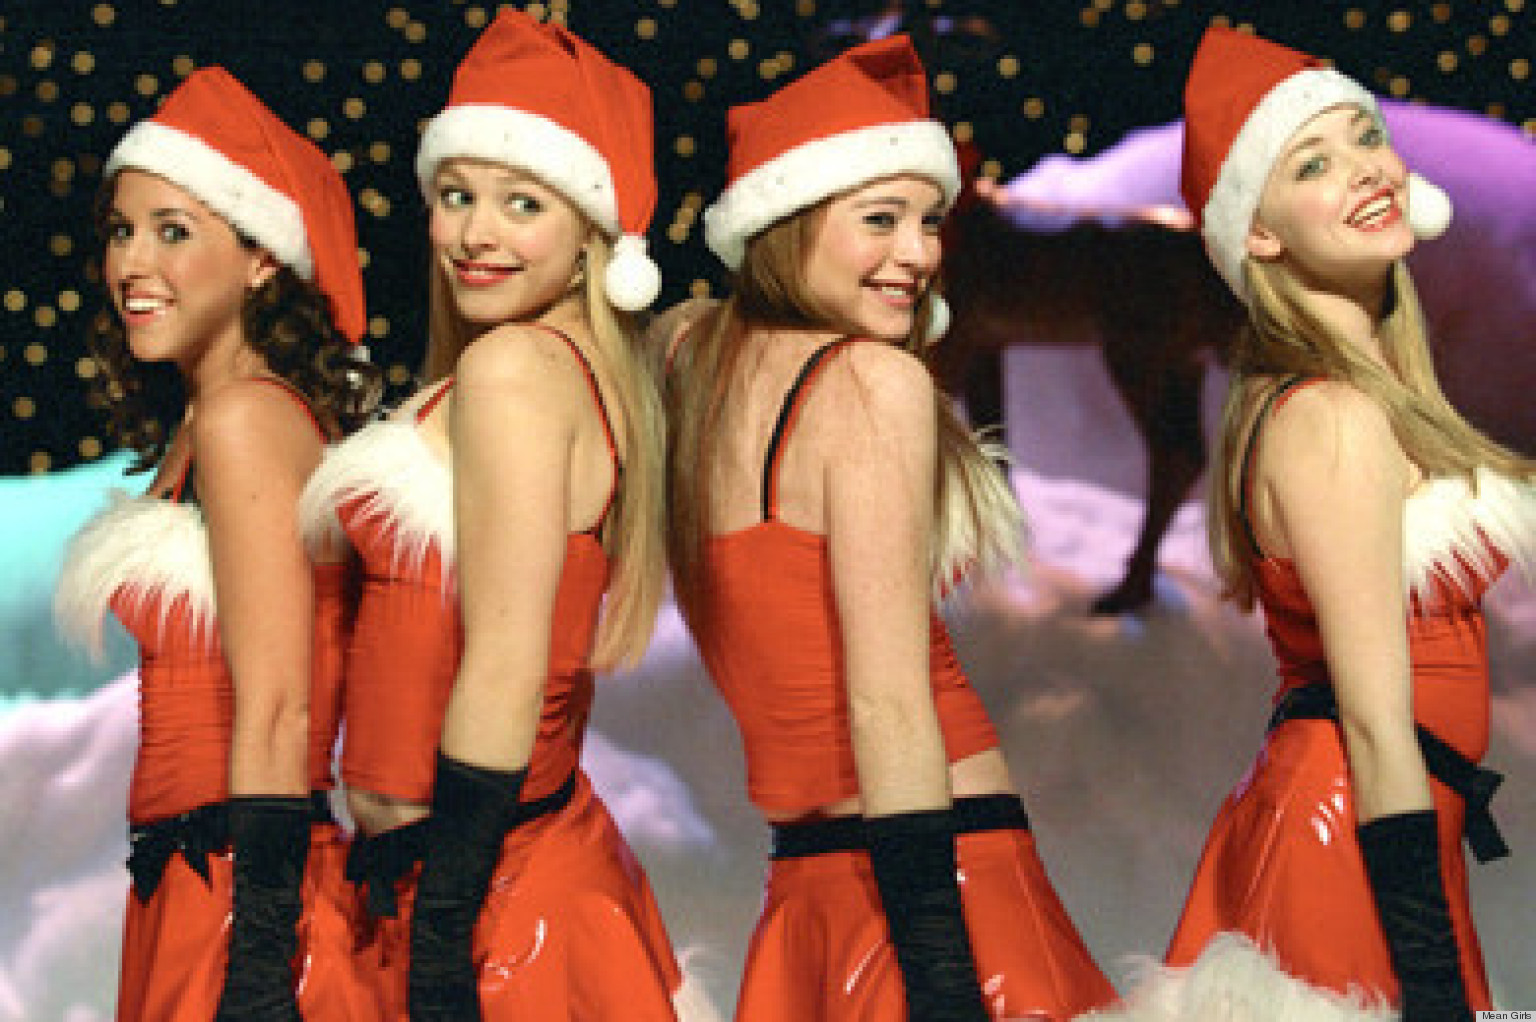 u0027Mean Girlsu0027 Jingle Bell Rock Outfits Are Still Our Favorite Christmas Costumes (VIDEO) | HuffPost  sc 1 st  HuffPost & Mean Girlsu0027 Jingle Bell Rock Outfits Are Still Our Favorite ...